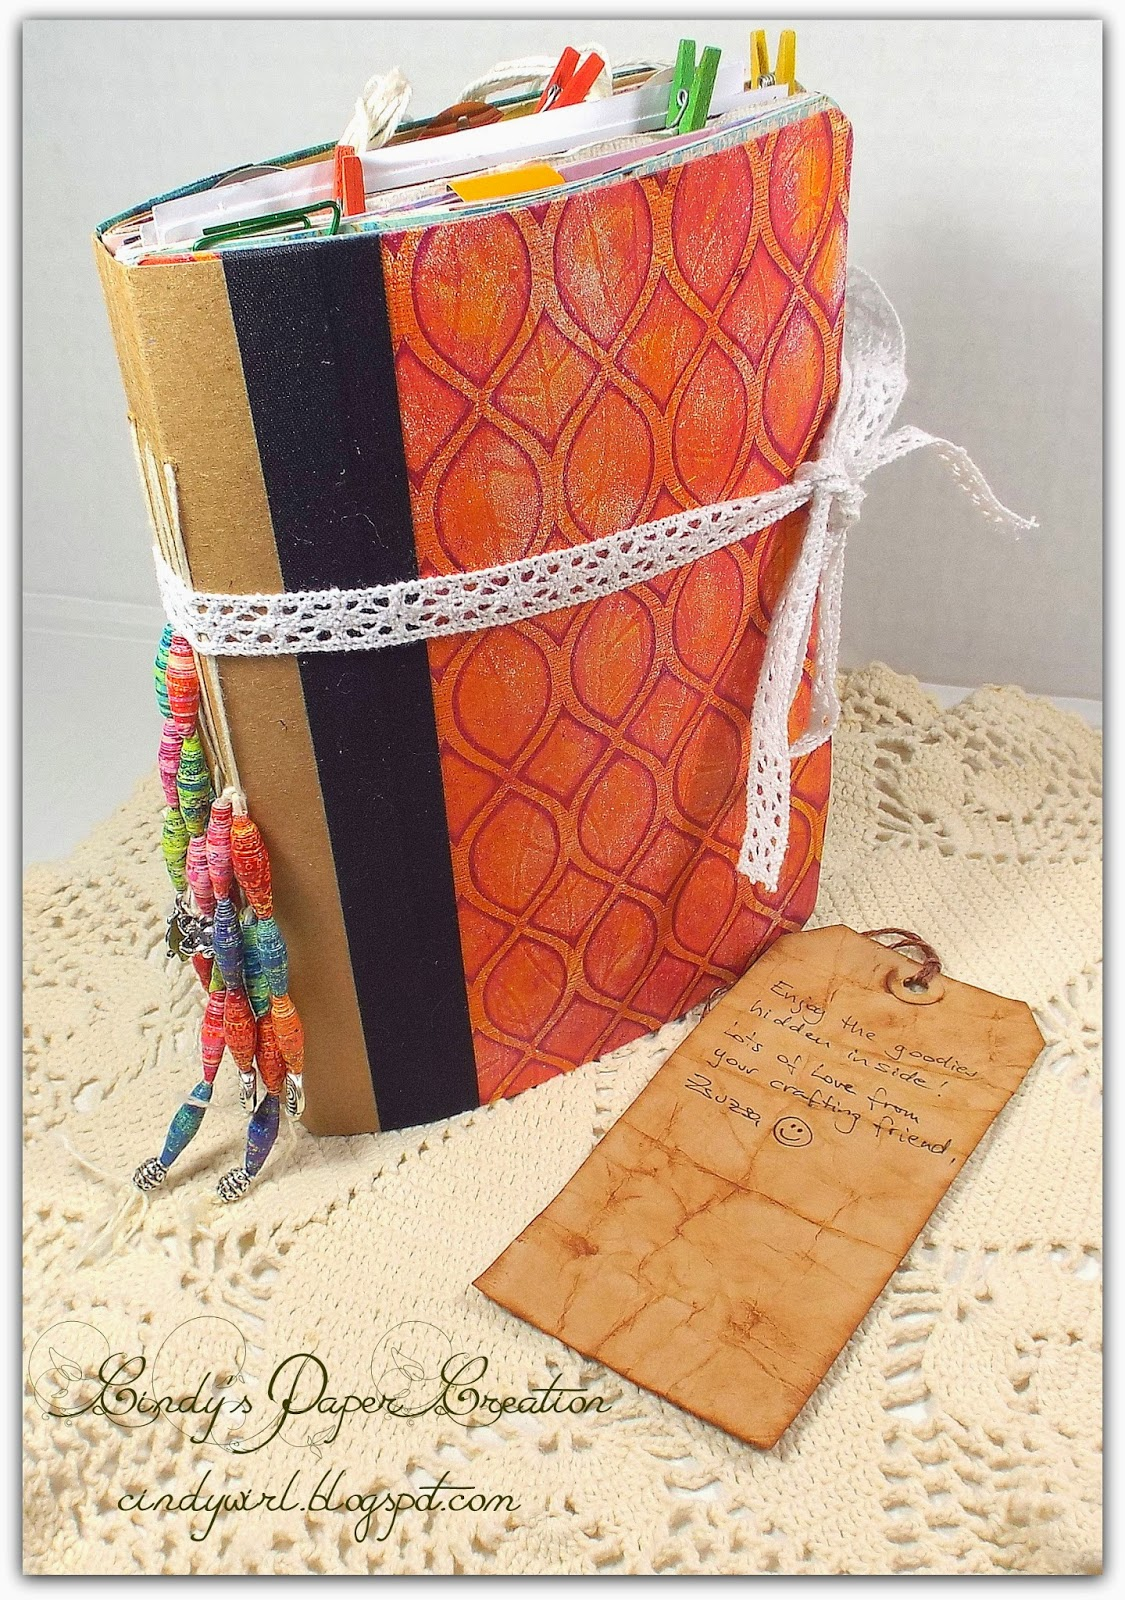 A Handmade Journal by Cindy's Paper Creation